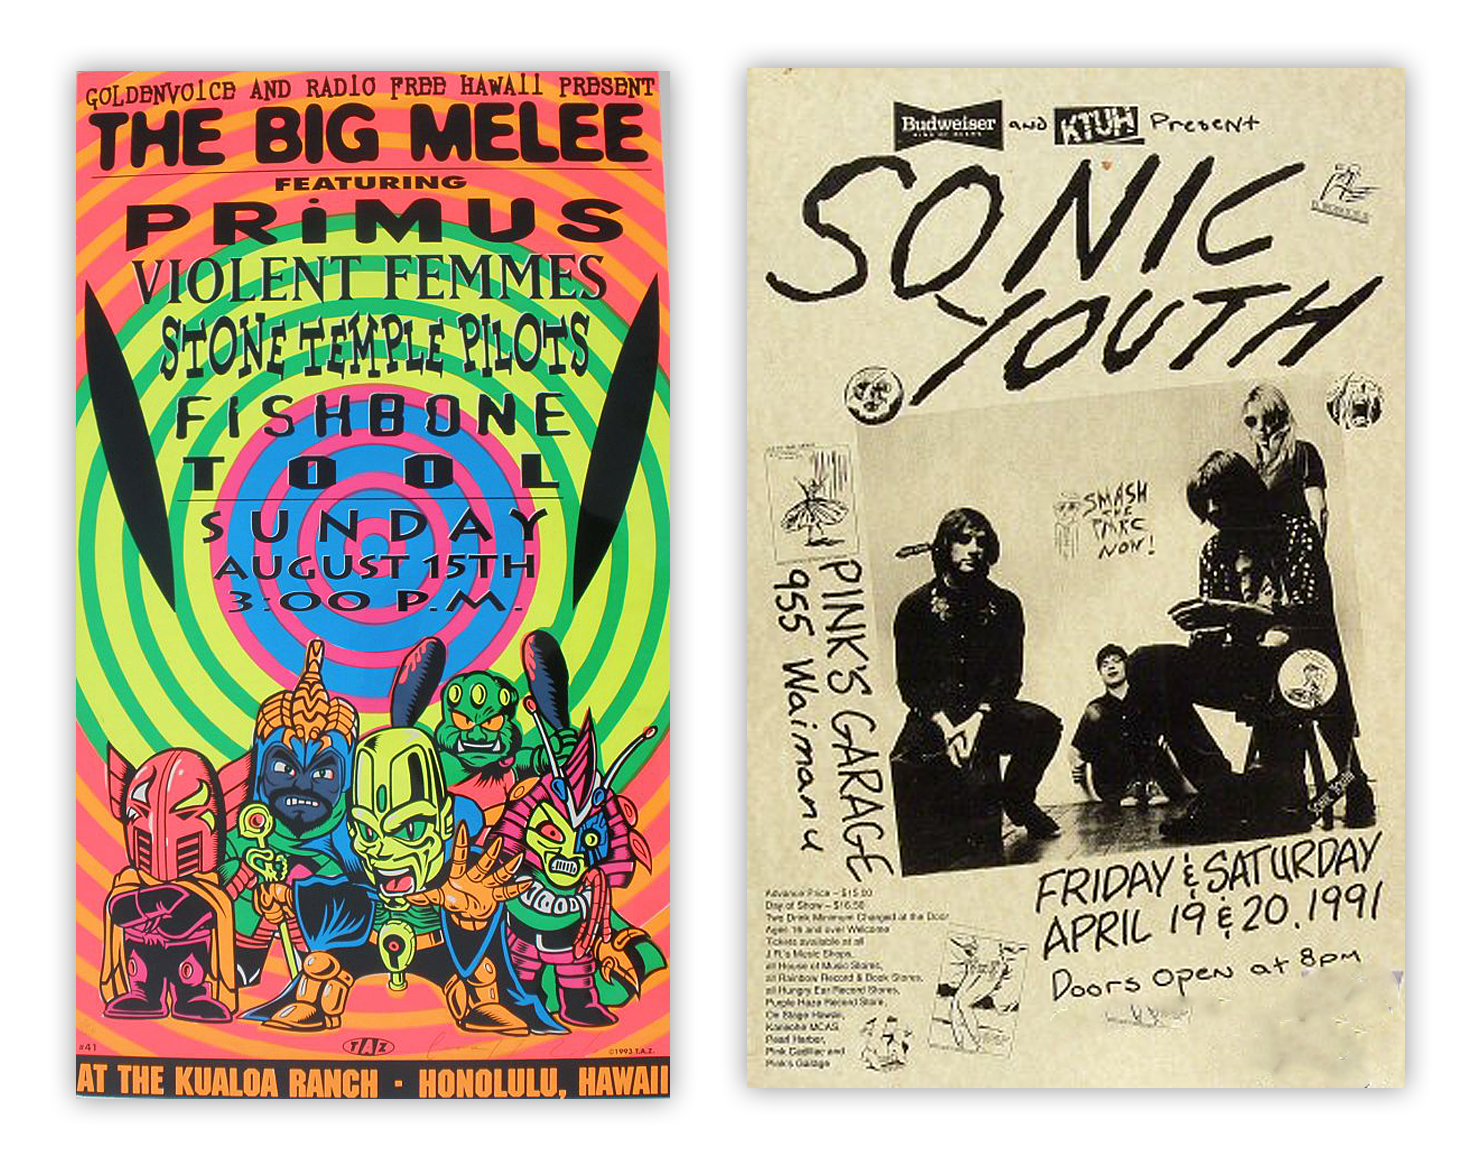 Outside of Nirvana material Mussell is interested in other posters from acts like these.